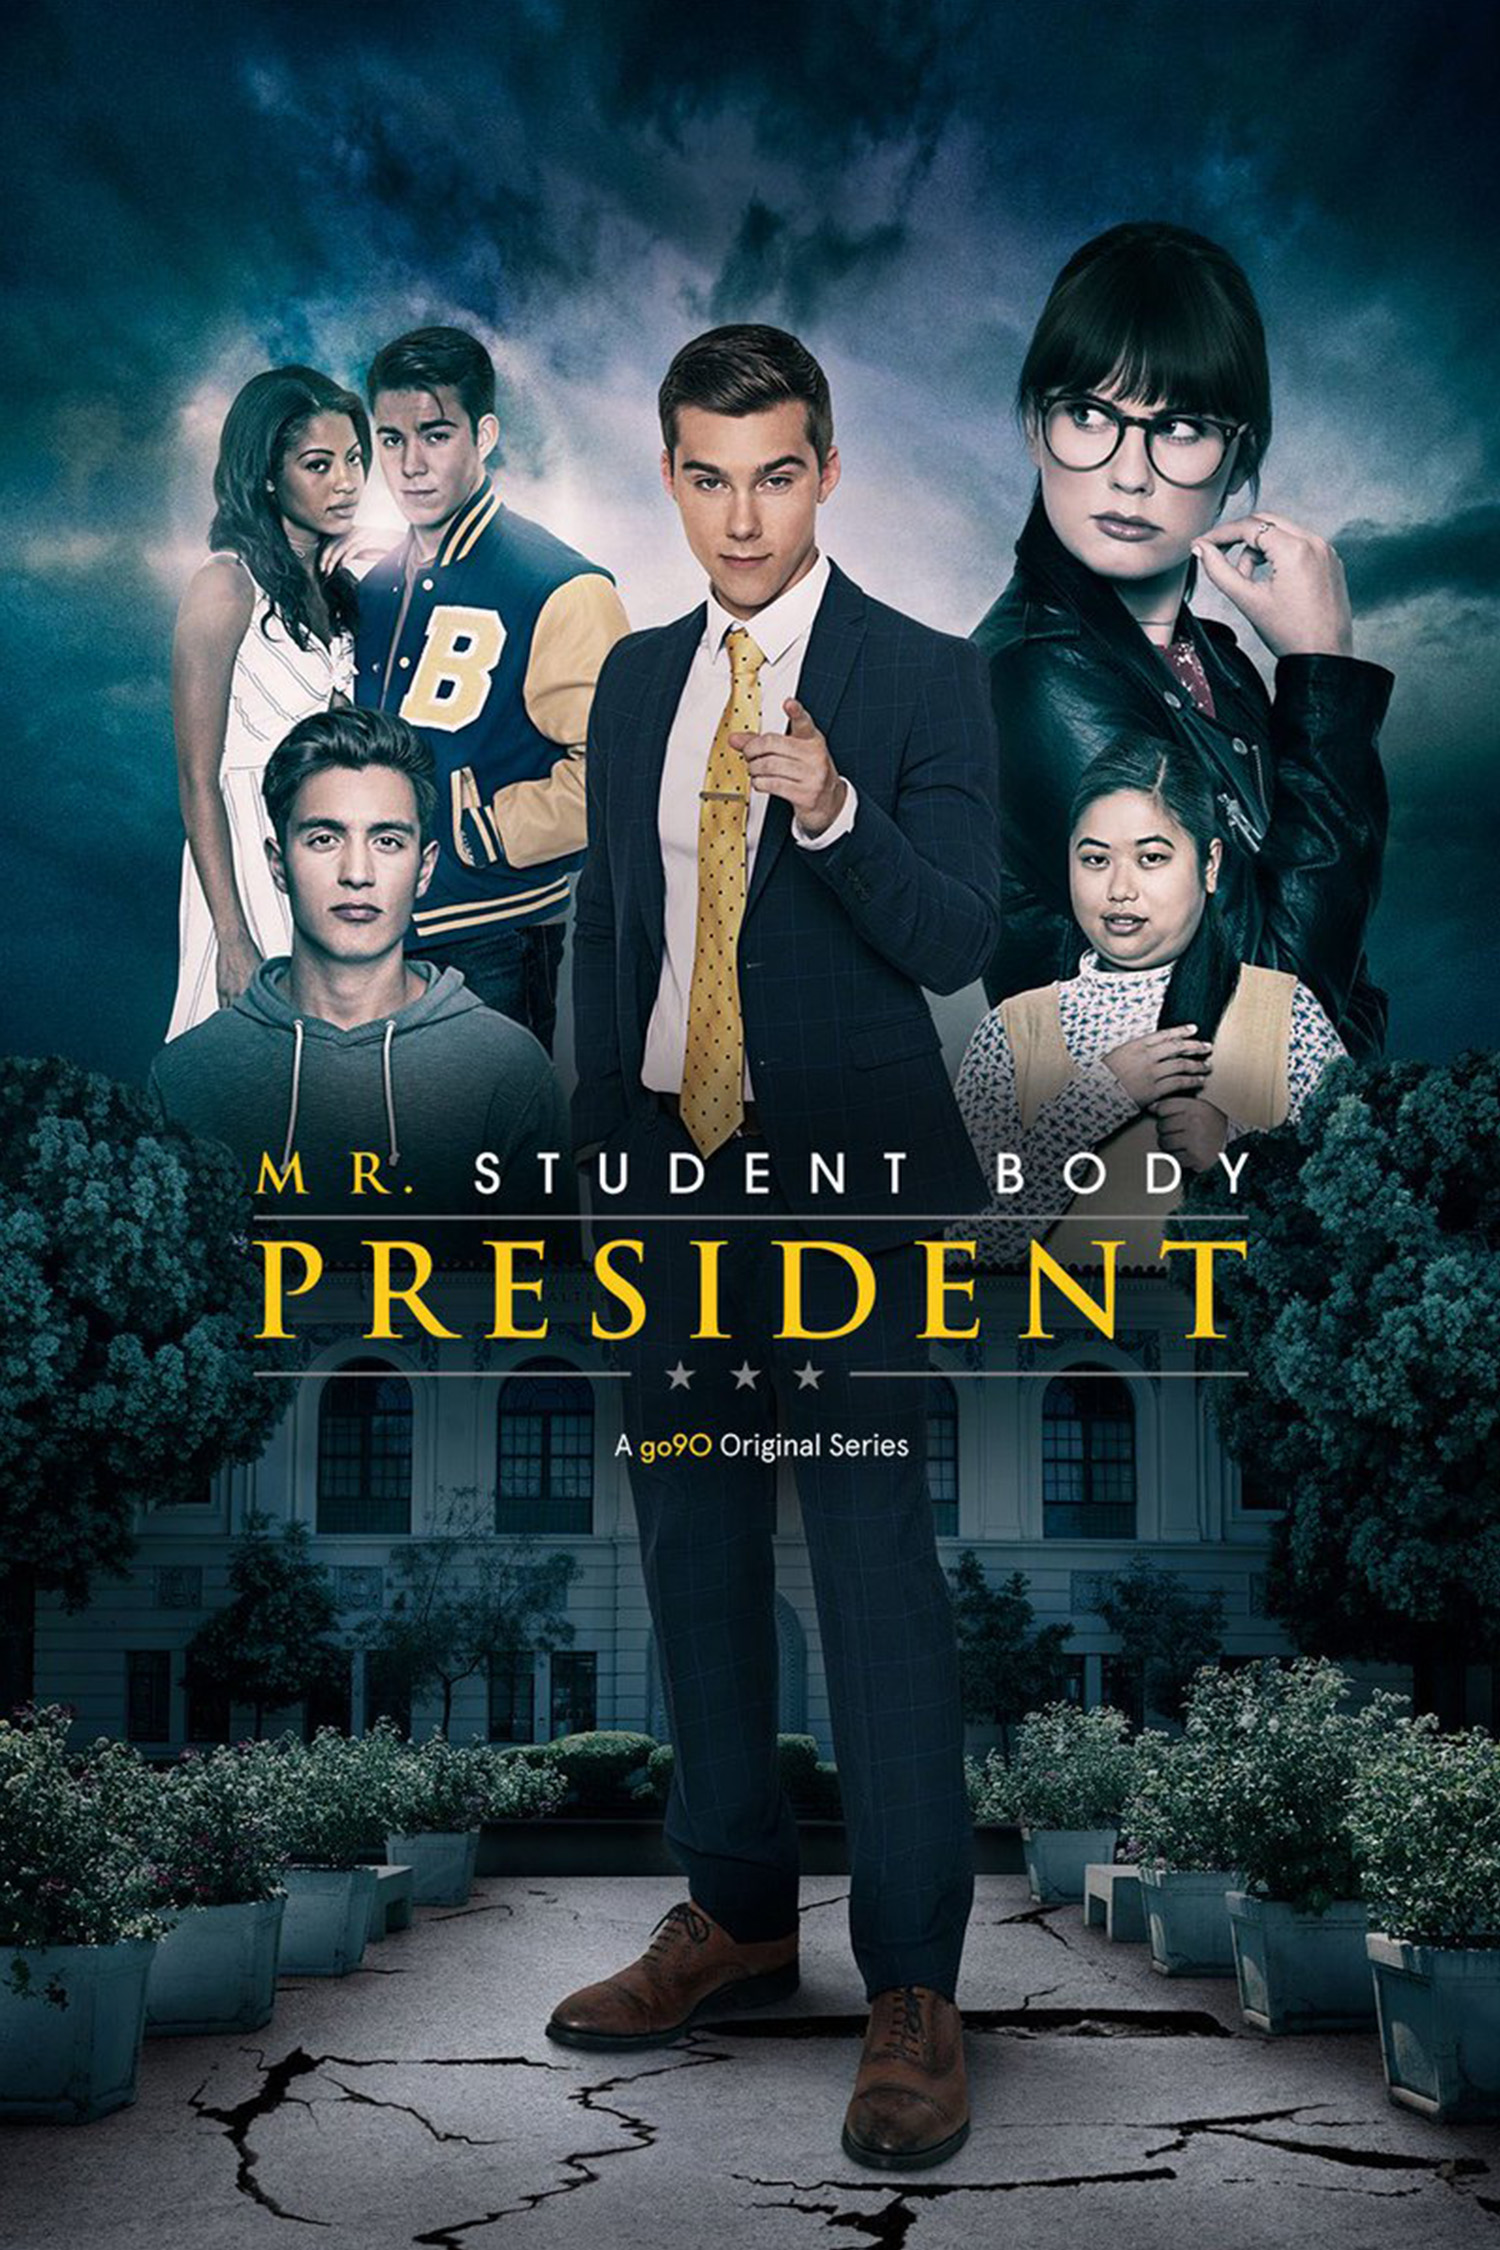 MR. STUDENT BODY PRESIDENT   TV Series, Comedy (Season 2-4)  New Form/Go90  Creators - Ryan Hunter, Jack Ferry  Editor - Waldemar Centeno  *2017 Streamys - Winner Best Directing, Ensemble Cast / Nominated Best Comedy, Acting  2018 Streamys - Nominated Best Directing, Acting